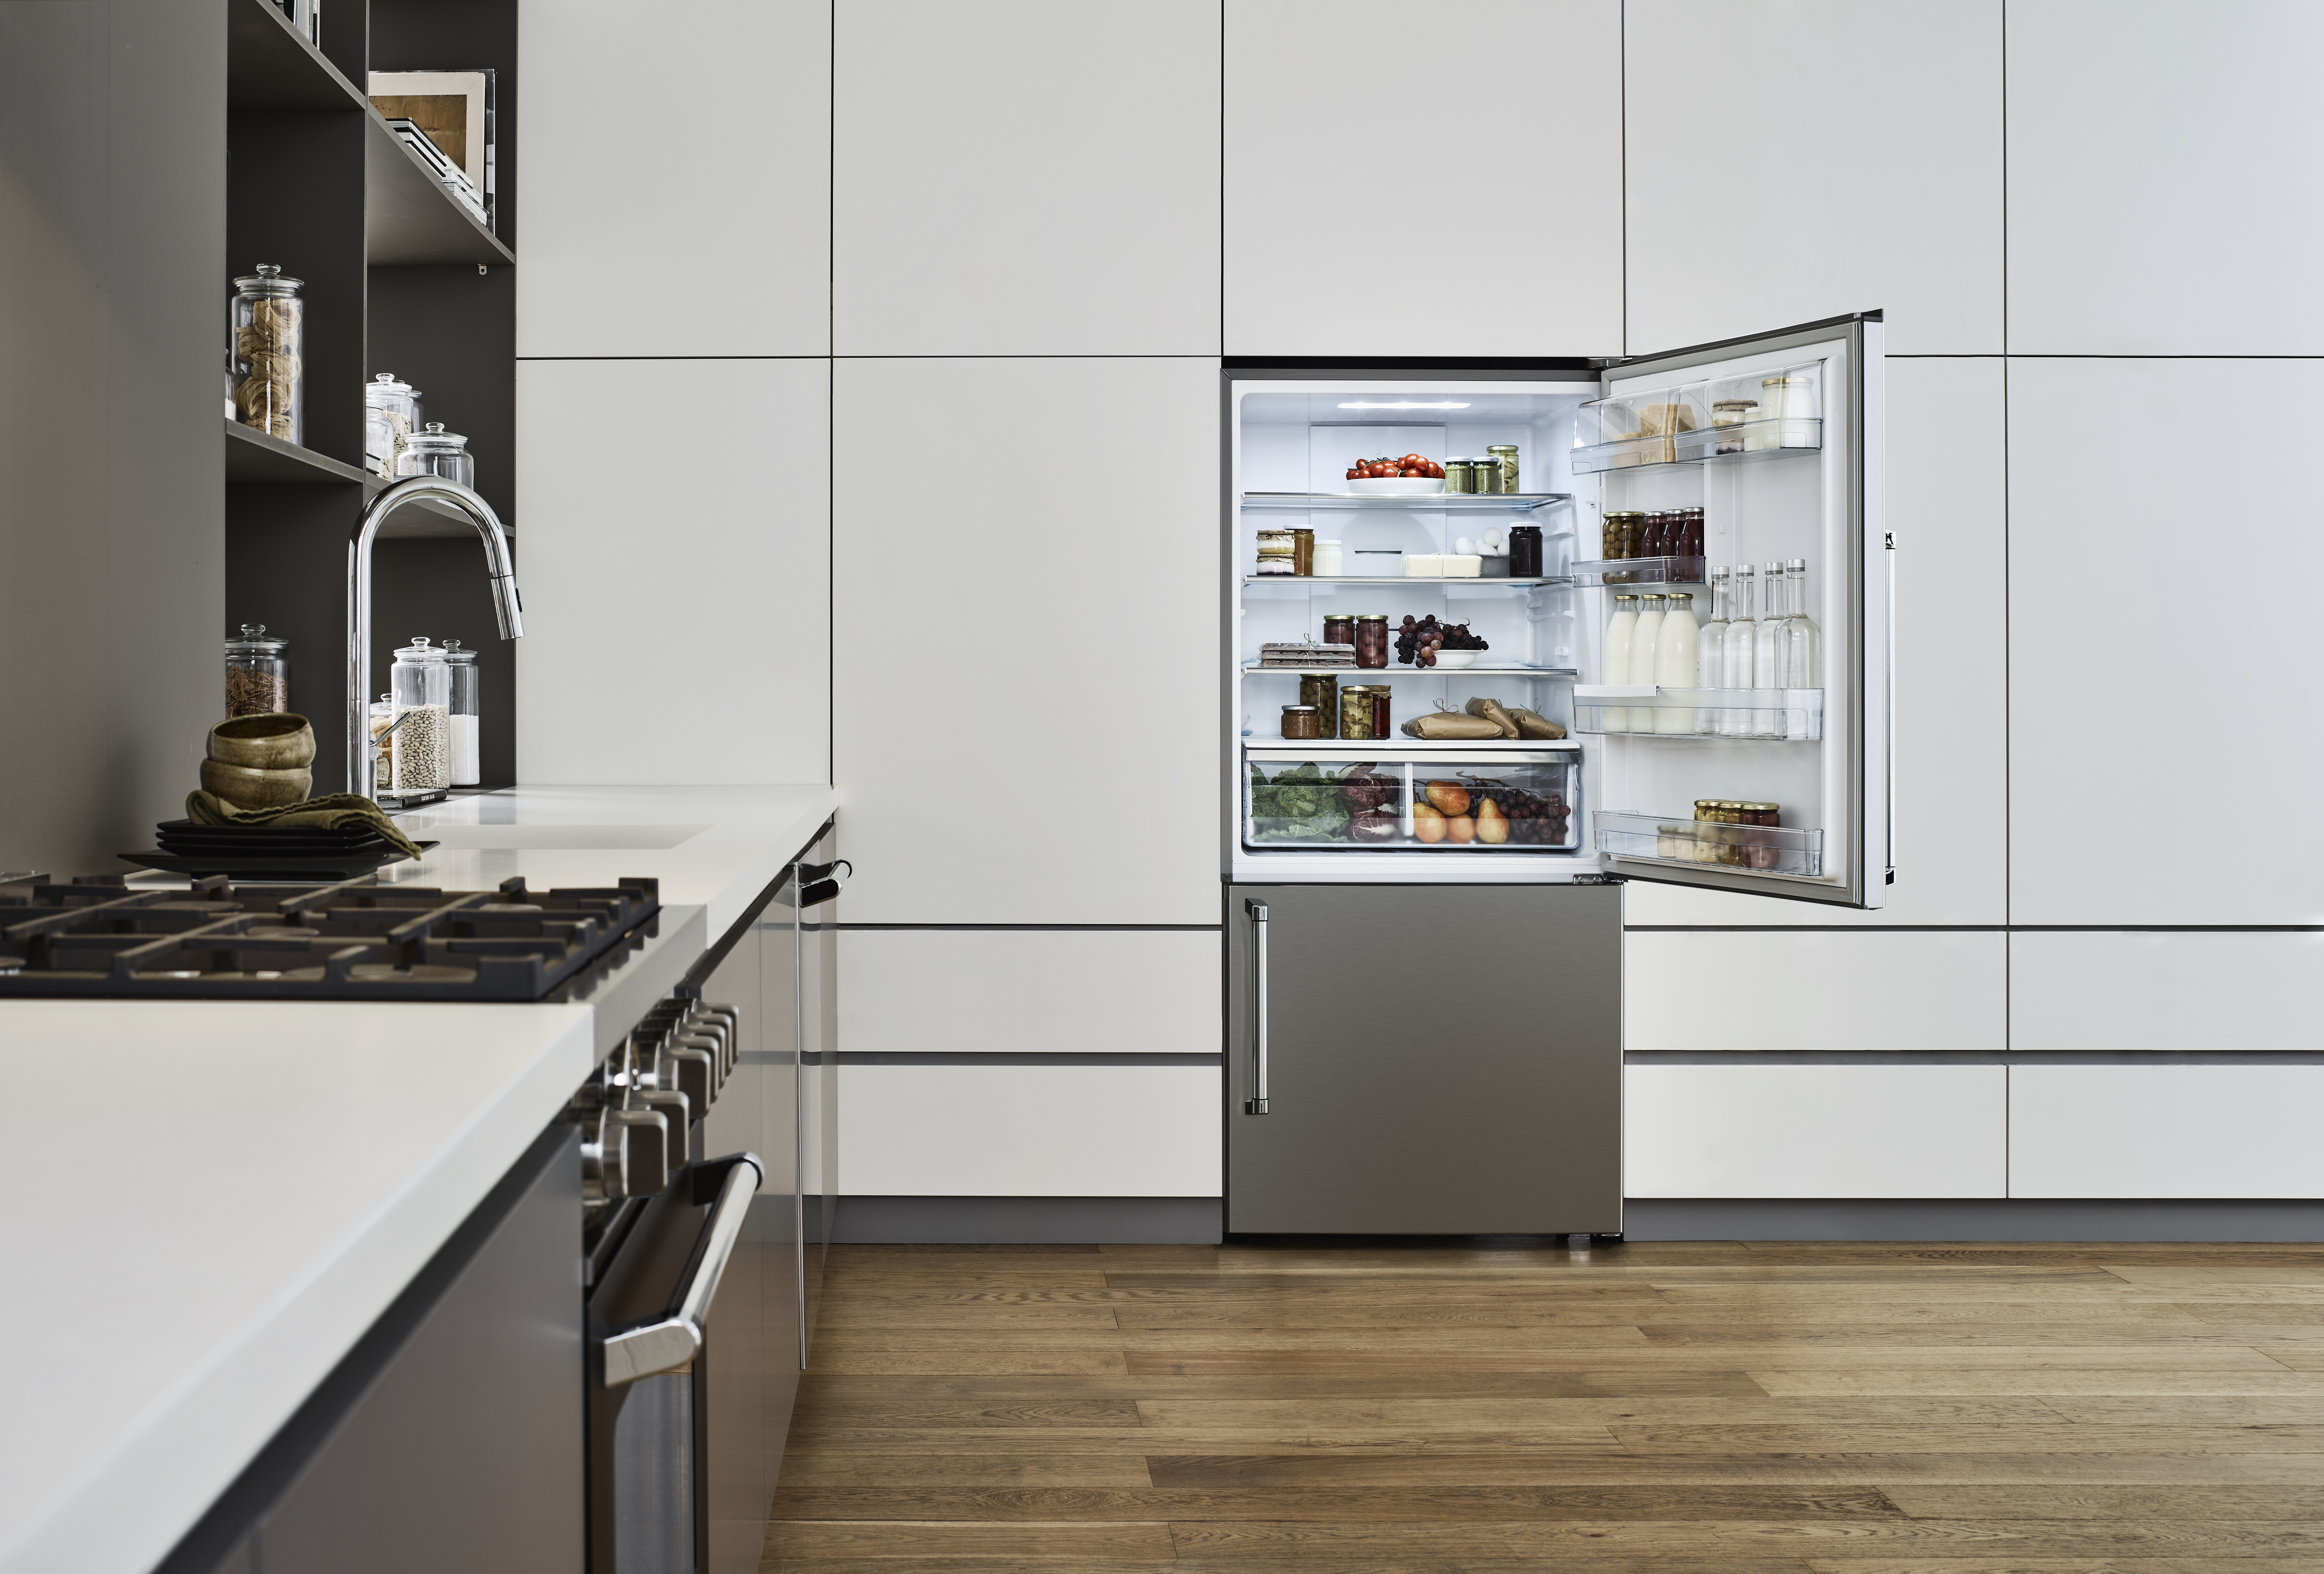 Bertazzoni Fridge REF31BMFX in Stainless Steel color showcased by Corbeil Electro Store